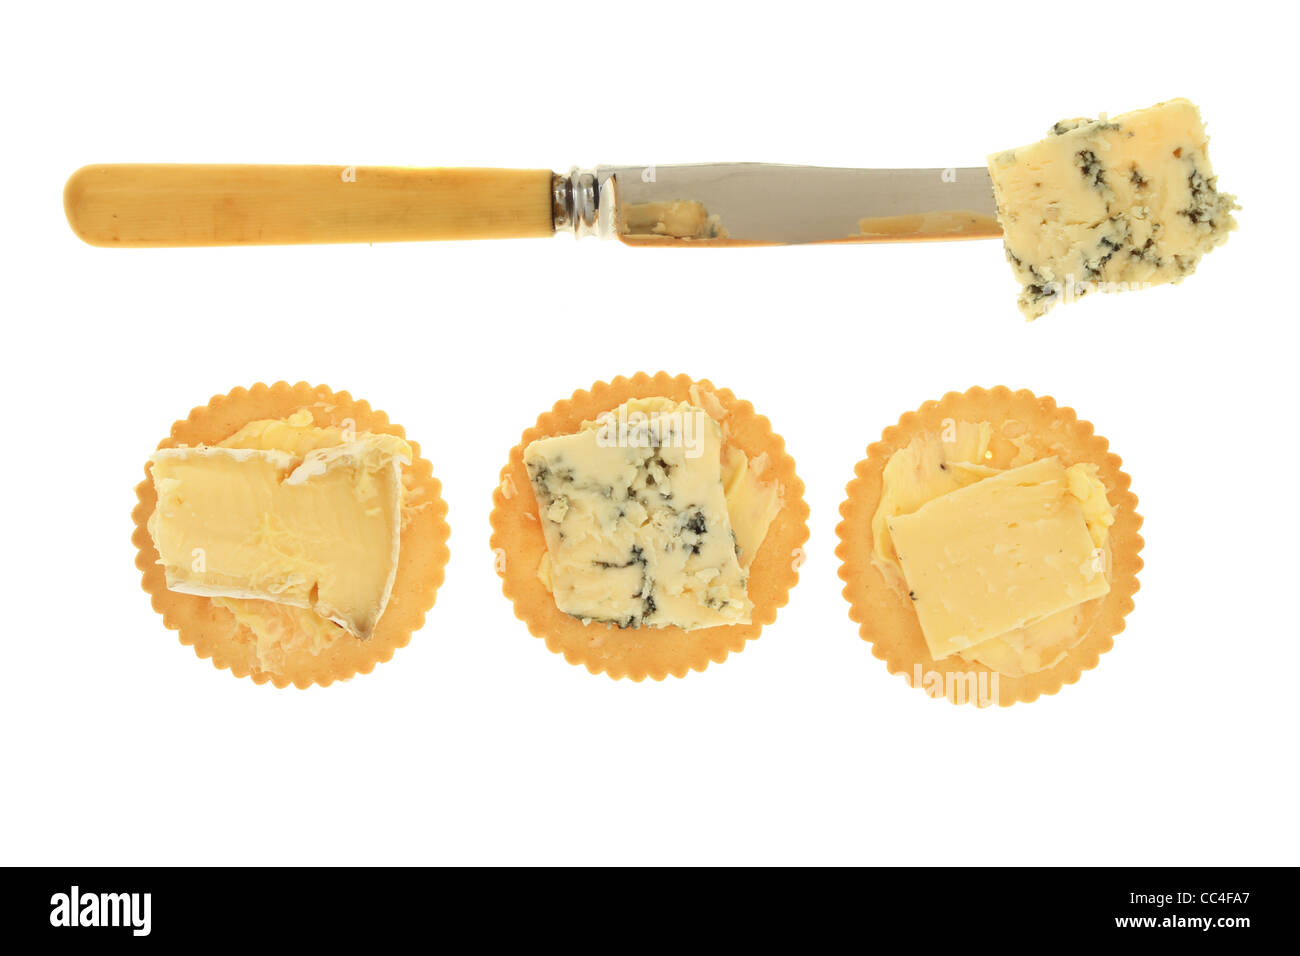 Cheese on biscuits with a knife isolated against white - Stock Image